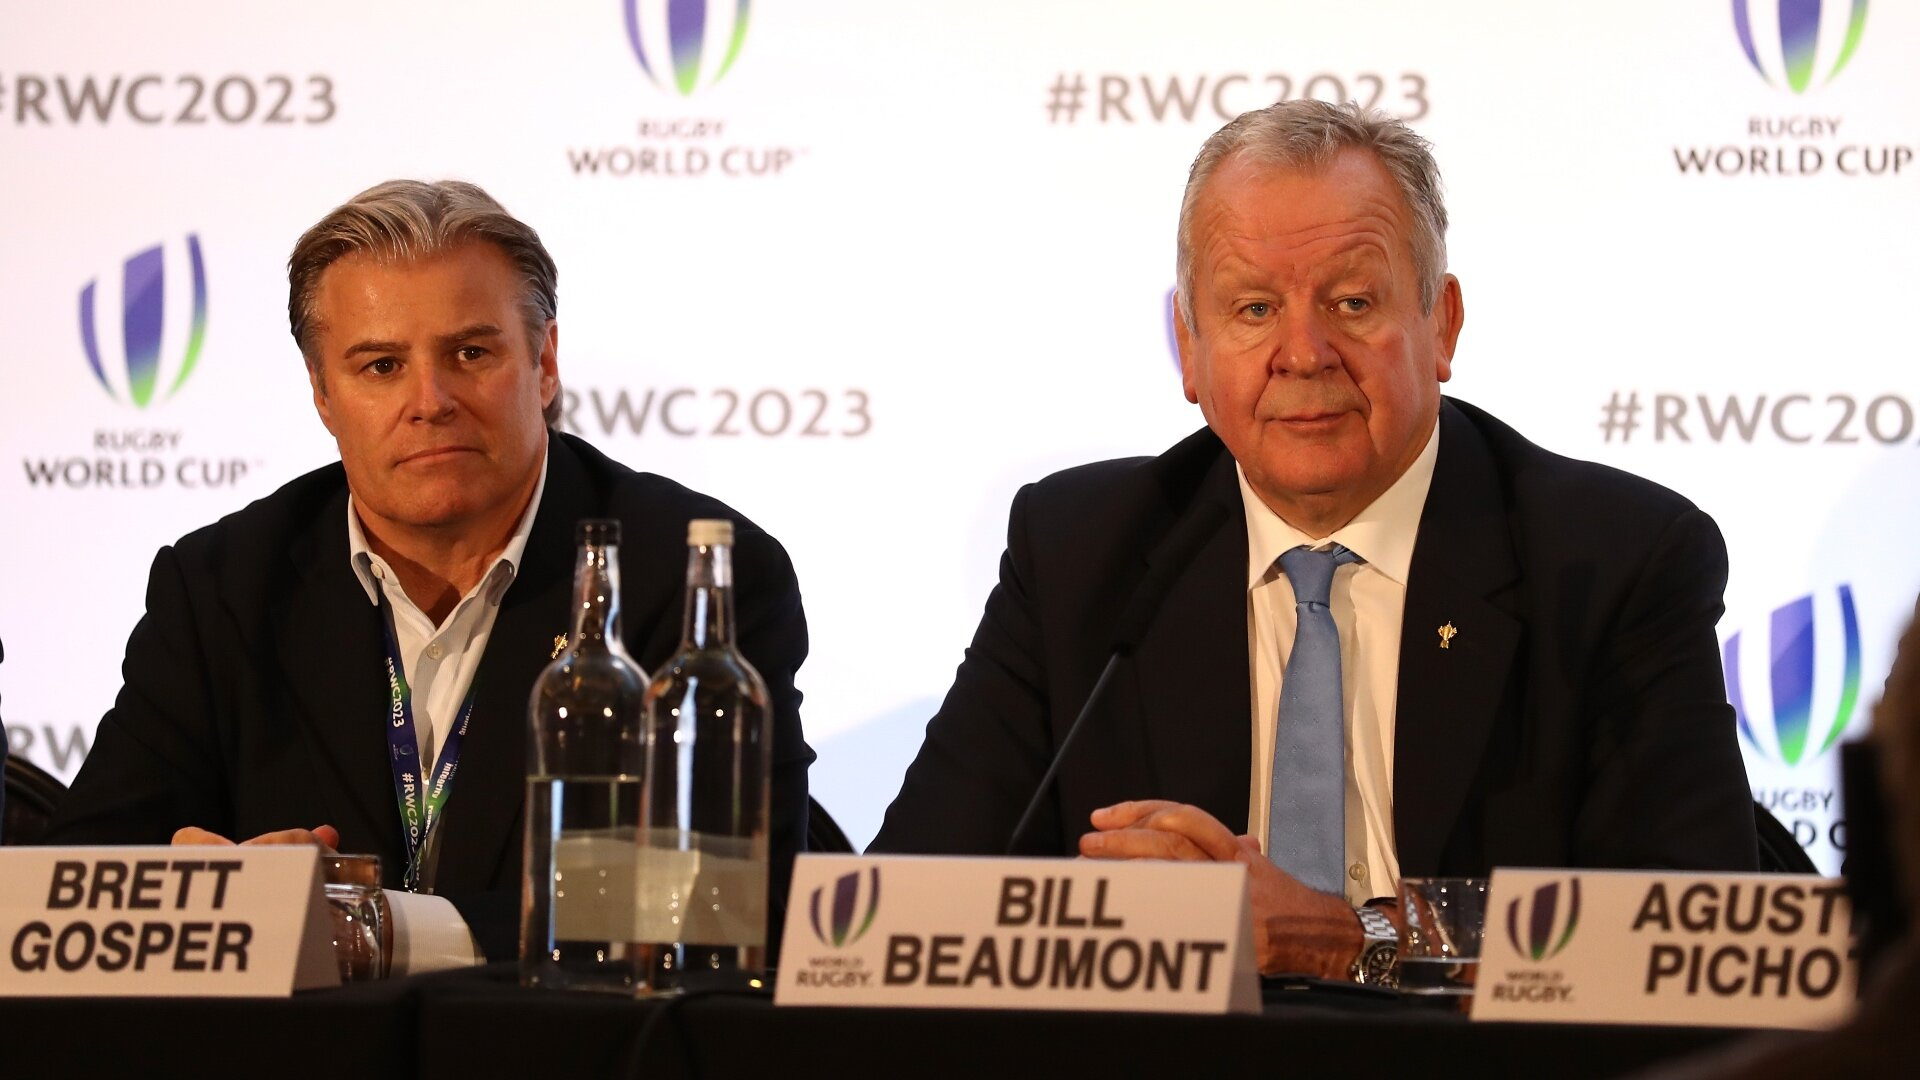 World Rugby election 'too close to call' - report